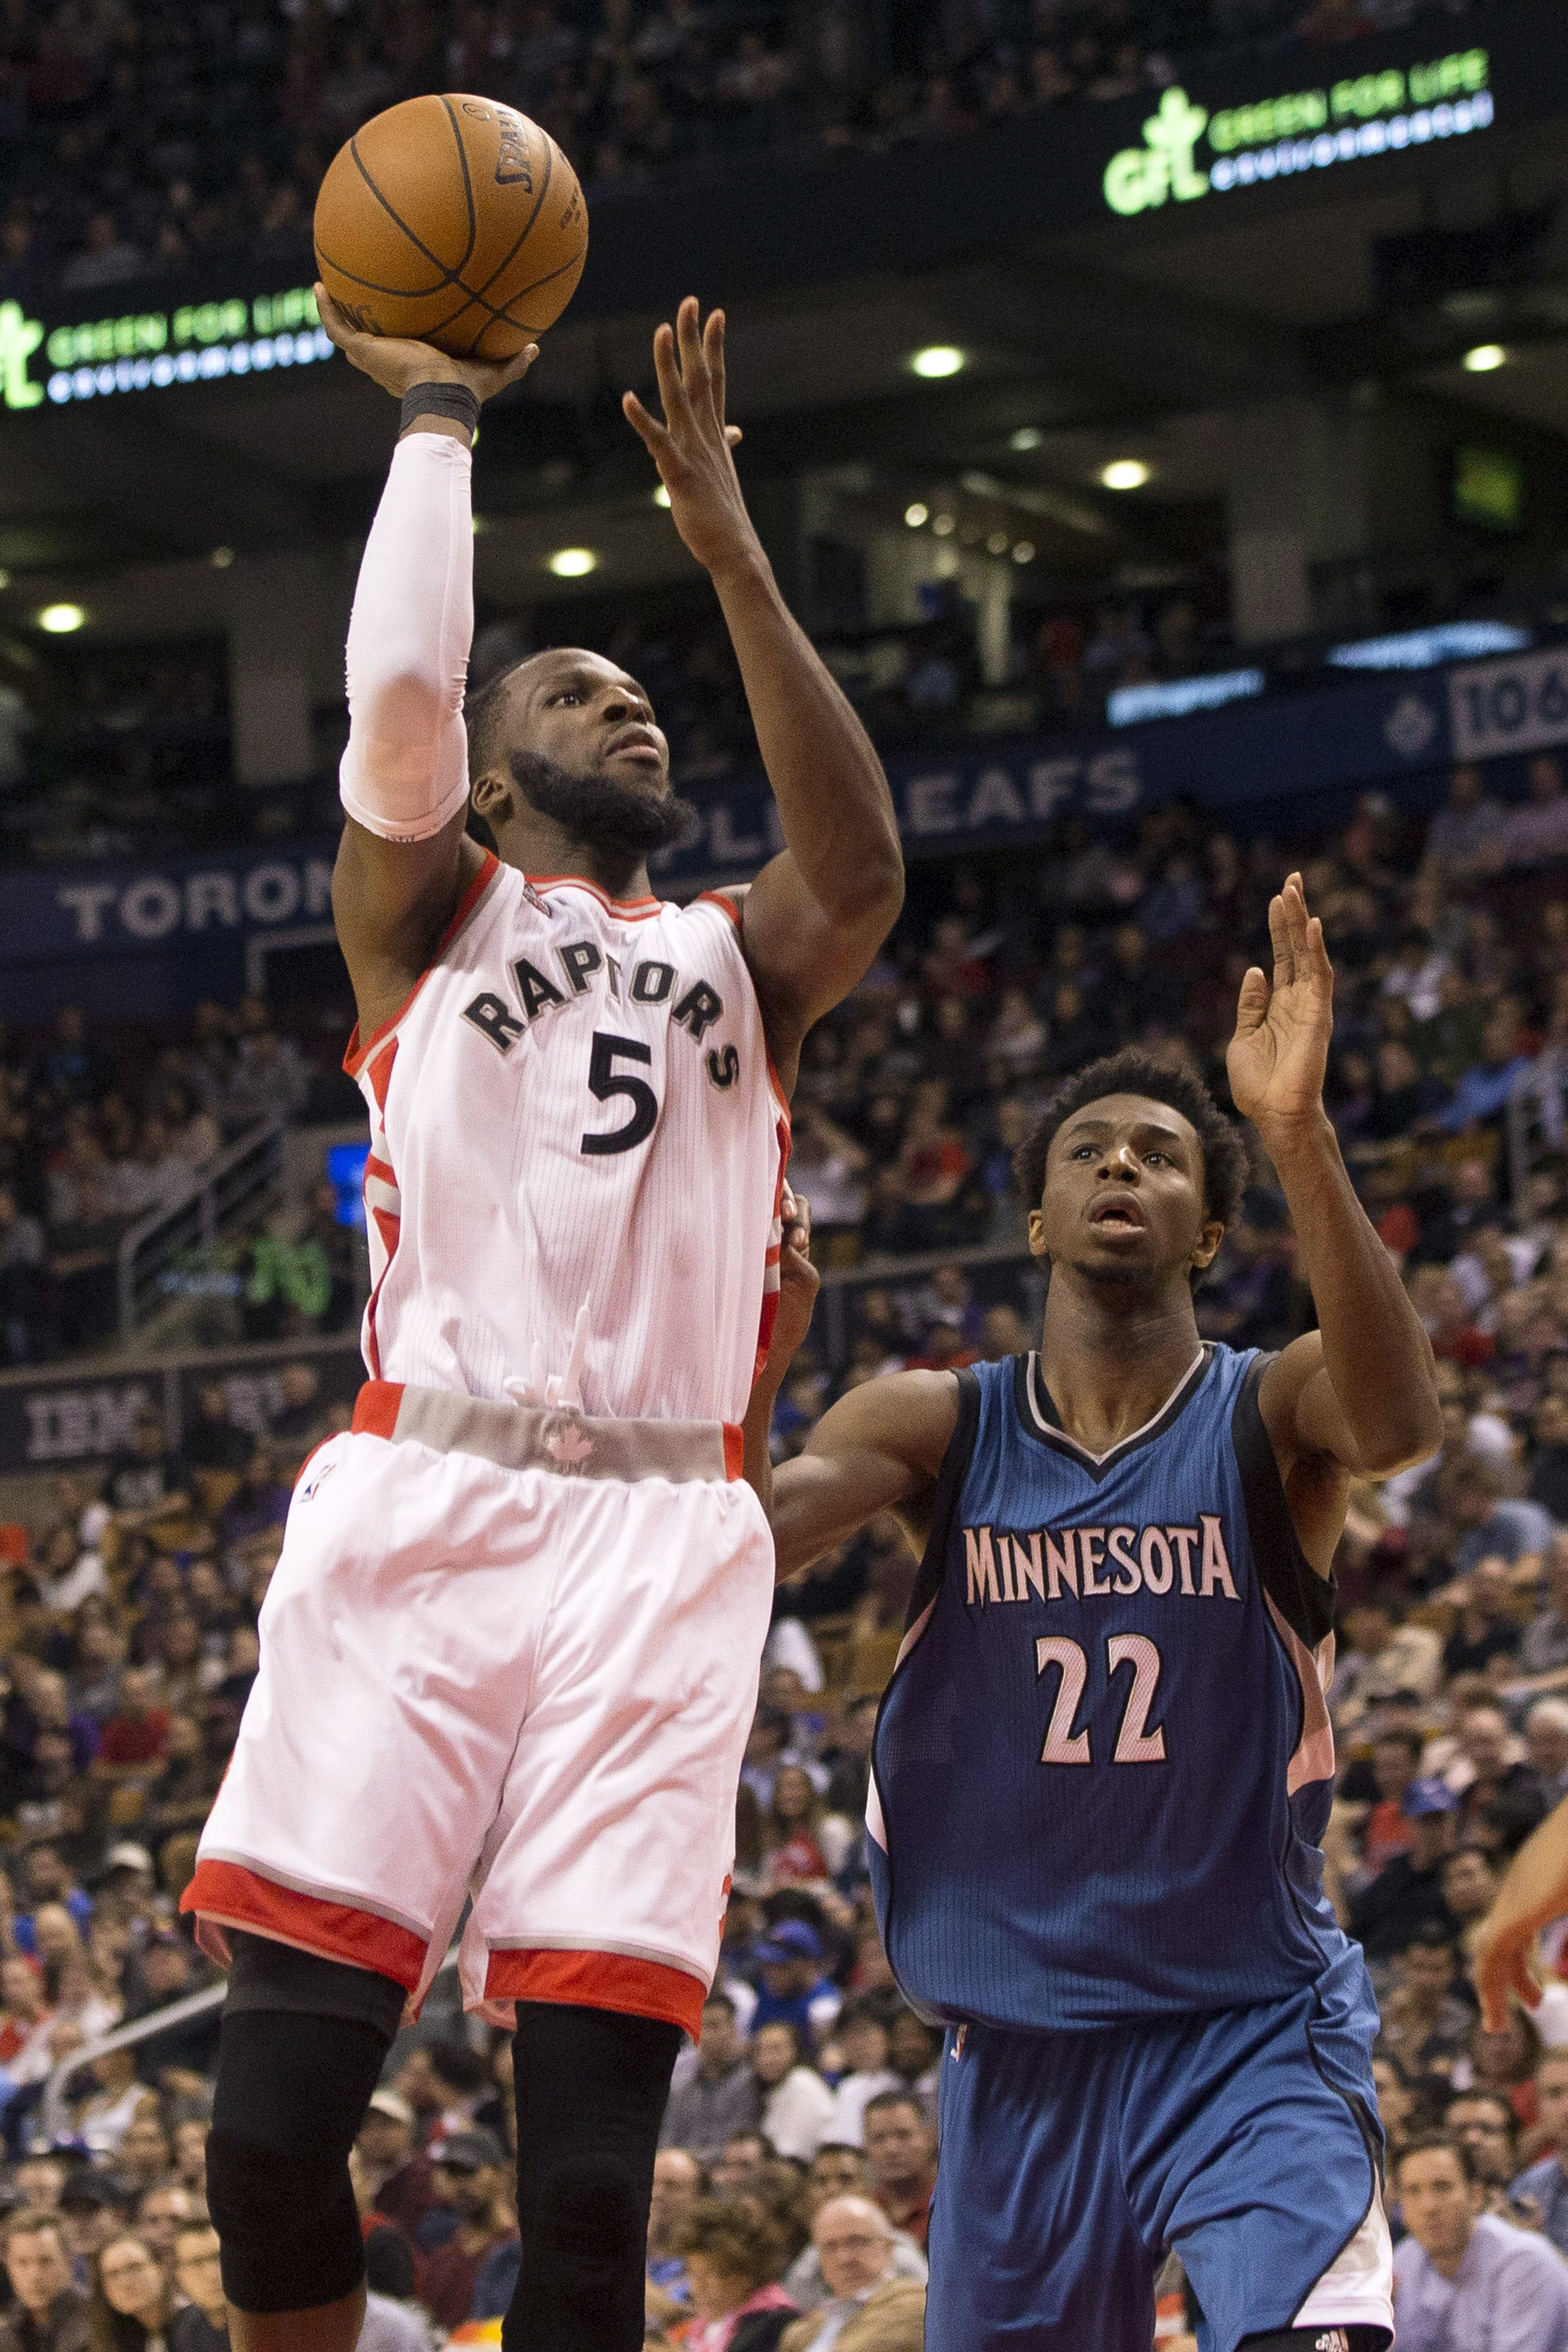 Toronto Raptors' DeMarre Carroll, left, shoots against Minnesota Timberwolves' Andrew Wiggins during the first half of an NBA preseason basketball game Monday, Oct. 12, 2015, in Toronto. (Chris Young/The Canadian Press via AP) MANDATORY CREDIT